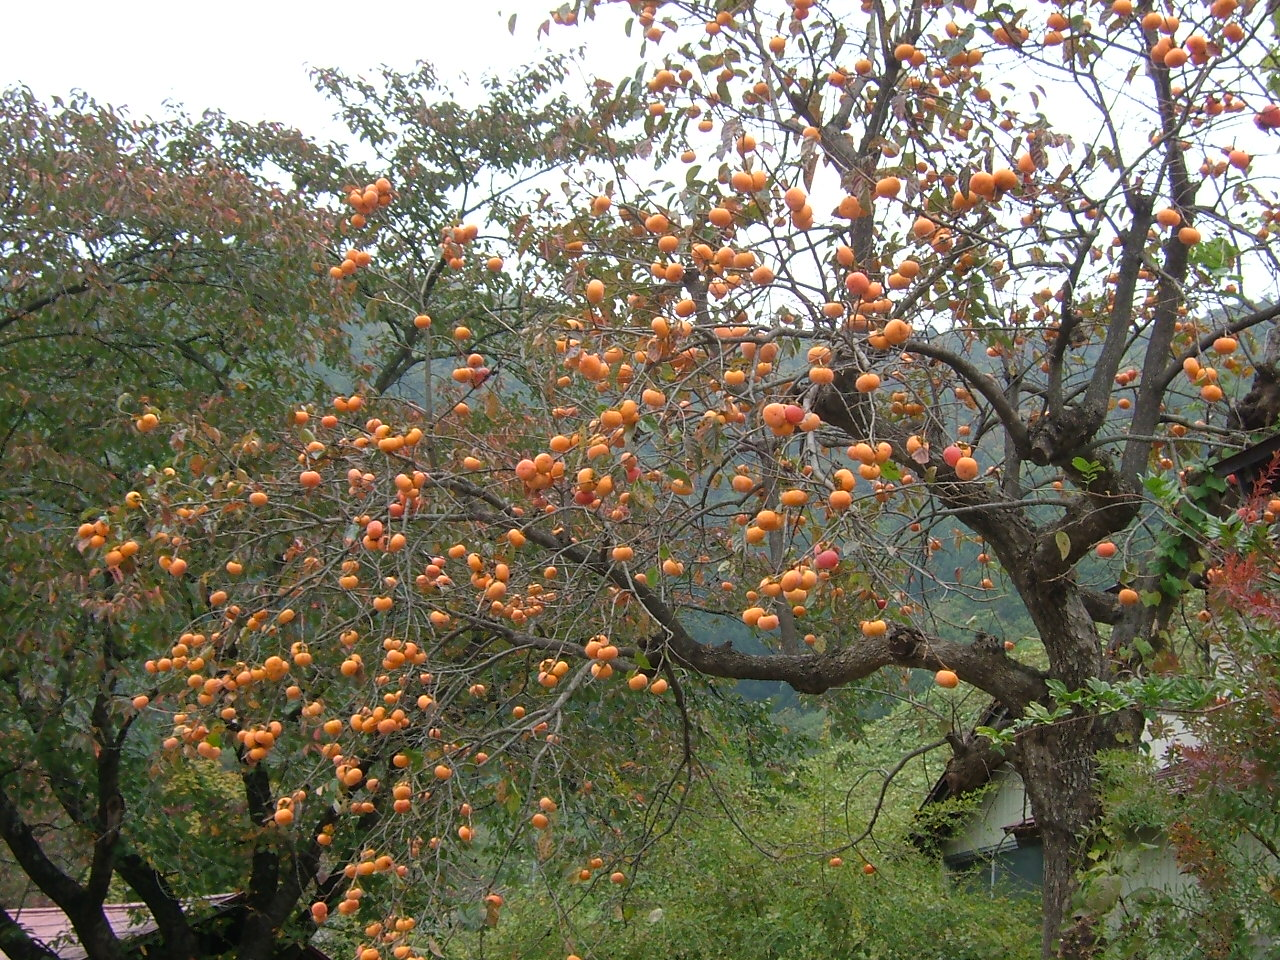 http://upload.wikimedia.org/wikipedia/commons/3/34/Persimmons_yamagata_2005-10.JPG